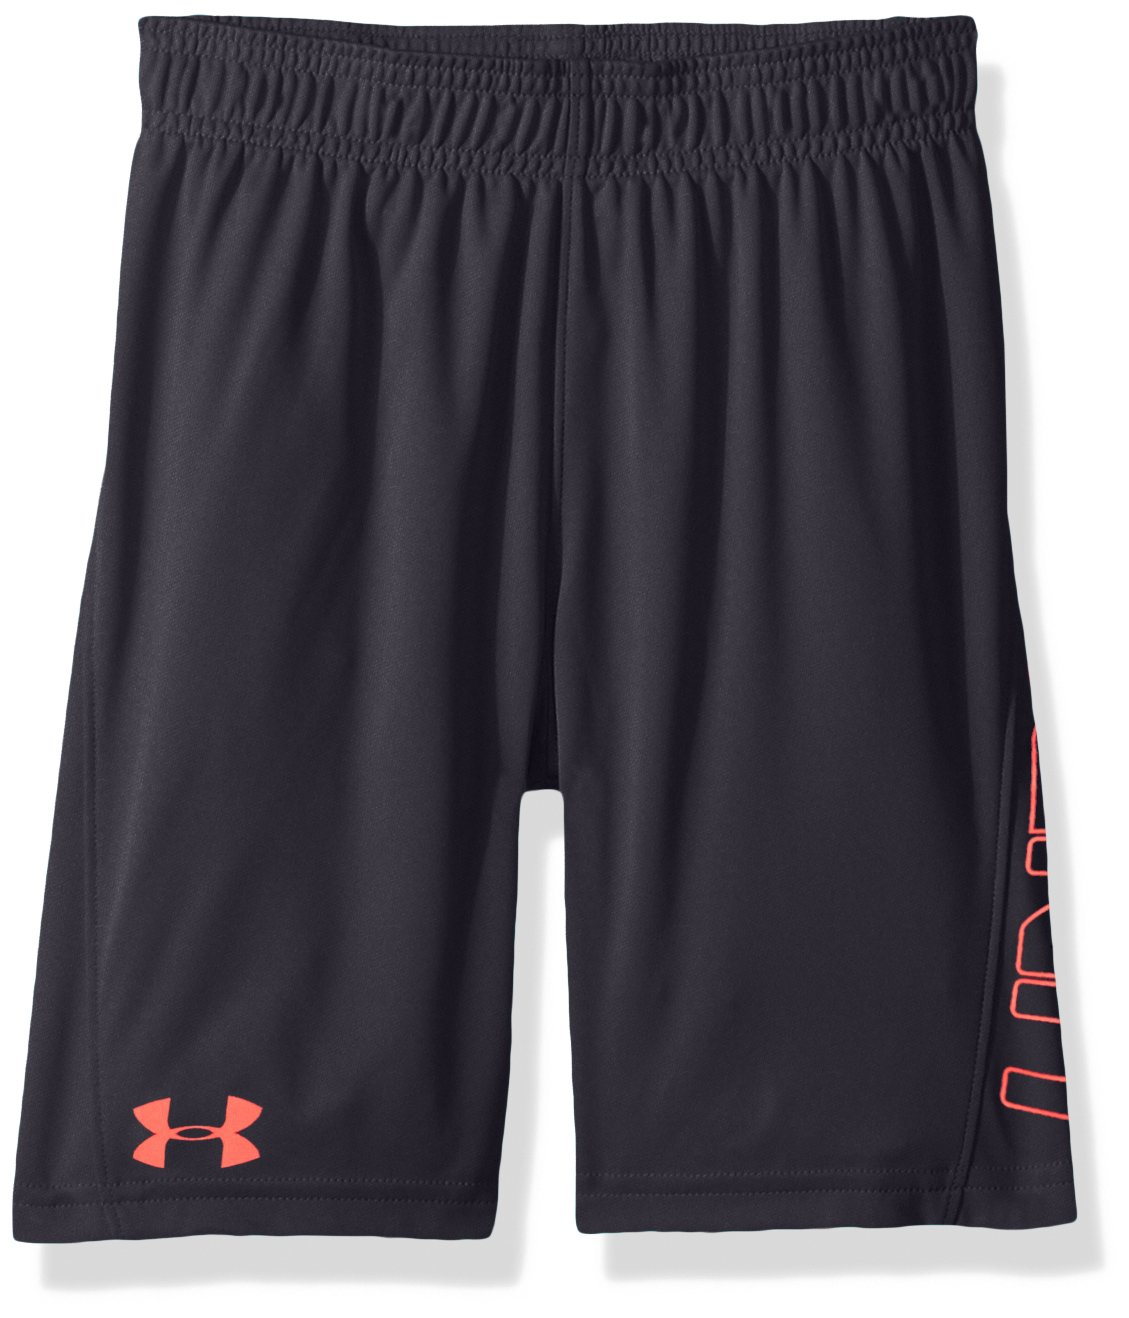 Under Armour Boys' Little Kick Off Short, Anthracite, 6 by Under Armour